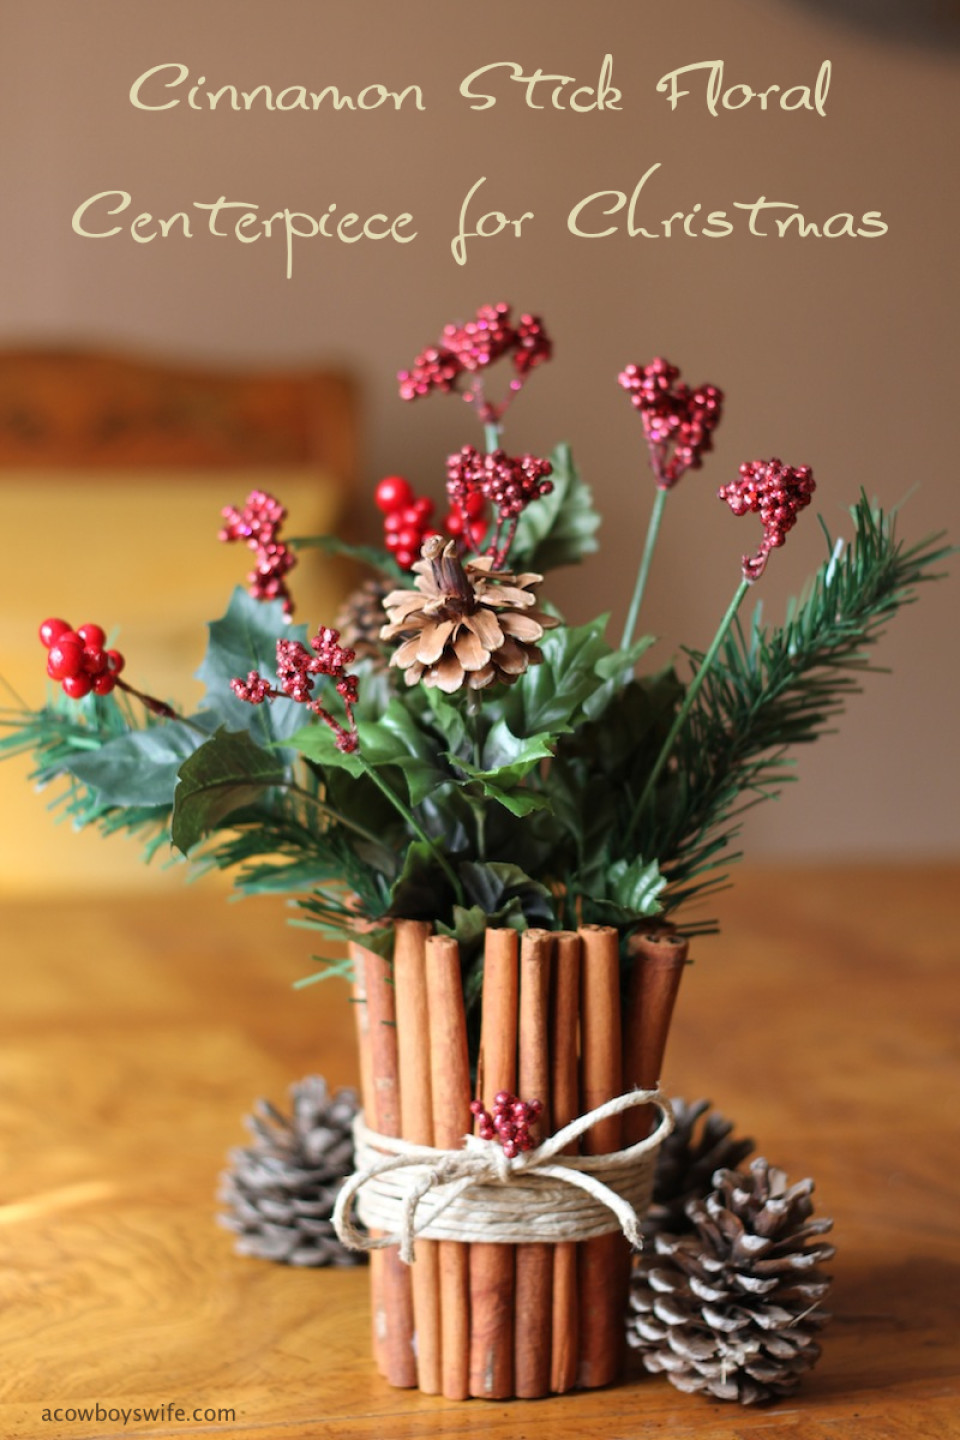 http://diybytiffany.com/wp-content/uploads/2013/12/Cinnamon-Stick-Floral-Centerpiece-for-Christmas-960x1440_c.jpg